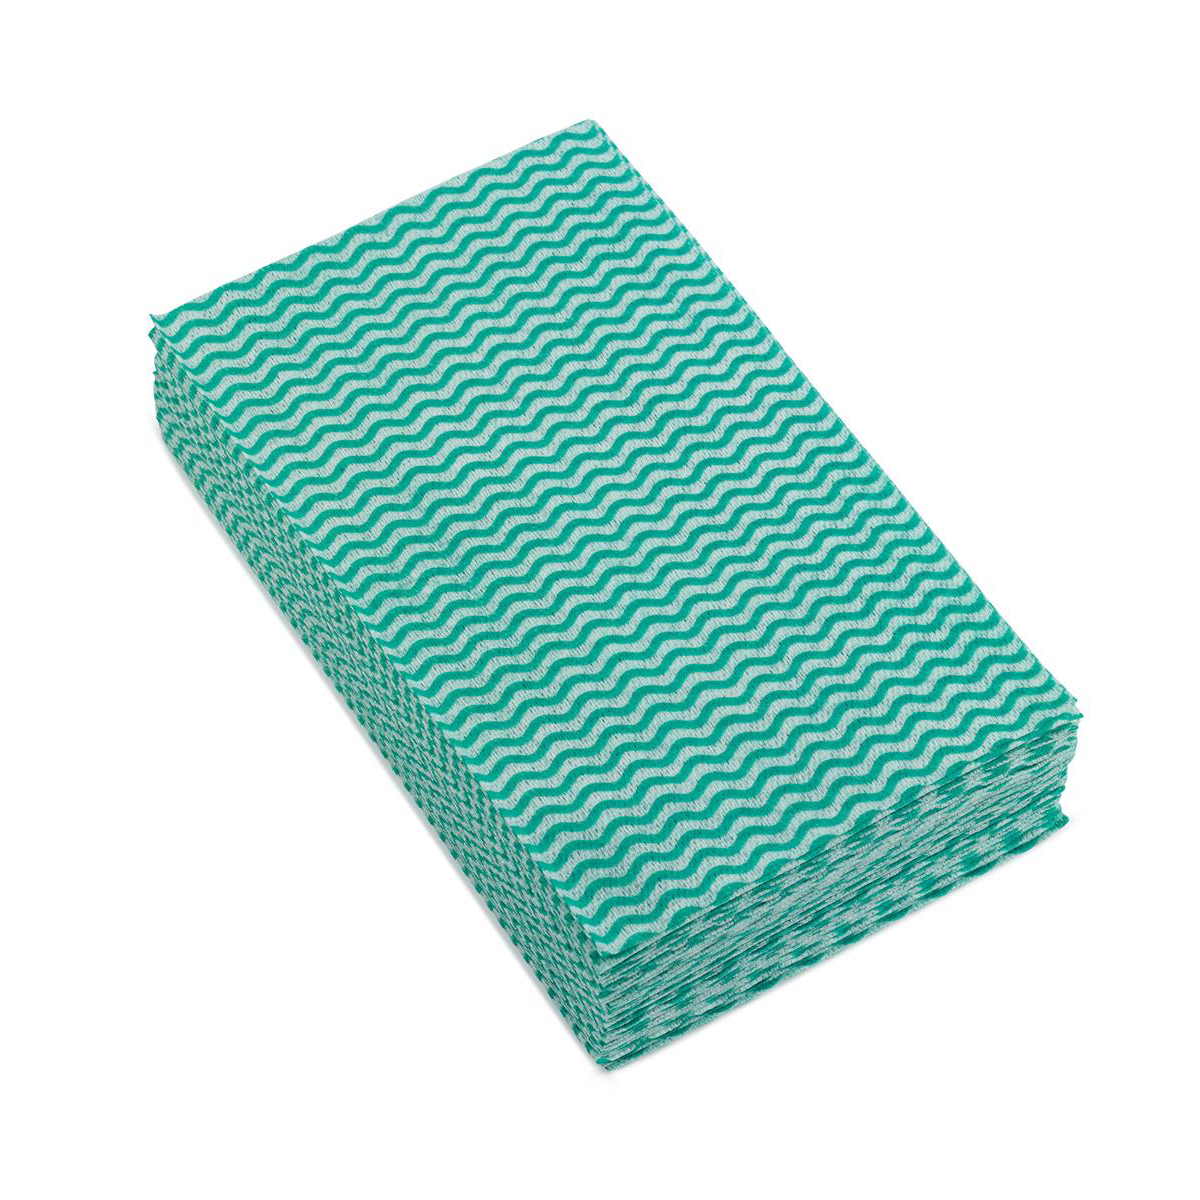 5 Star Facilities Cleaning Cloths Anti-microbial 40gsm W500xL300mm Wavy Line Green Pack 50